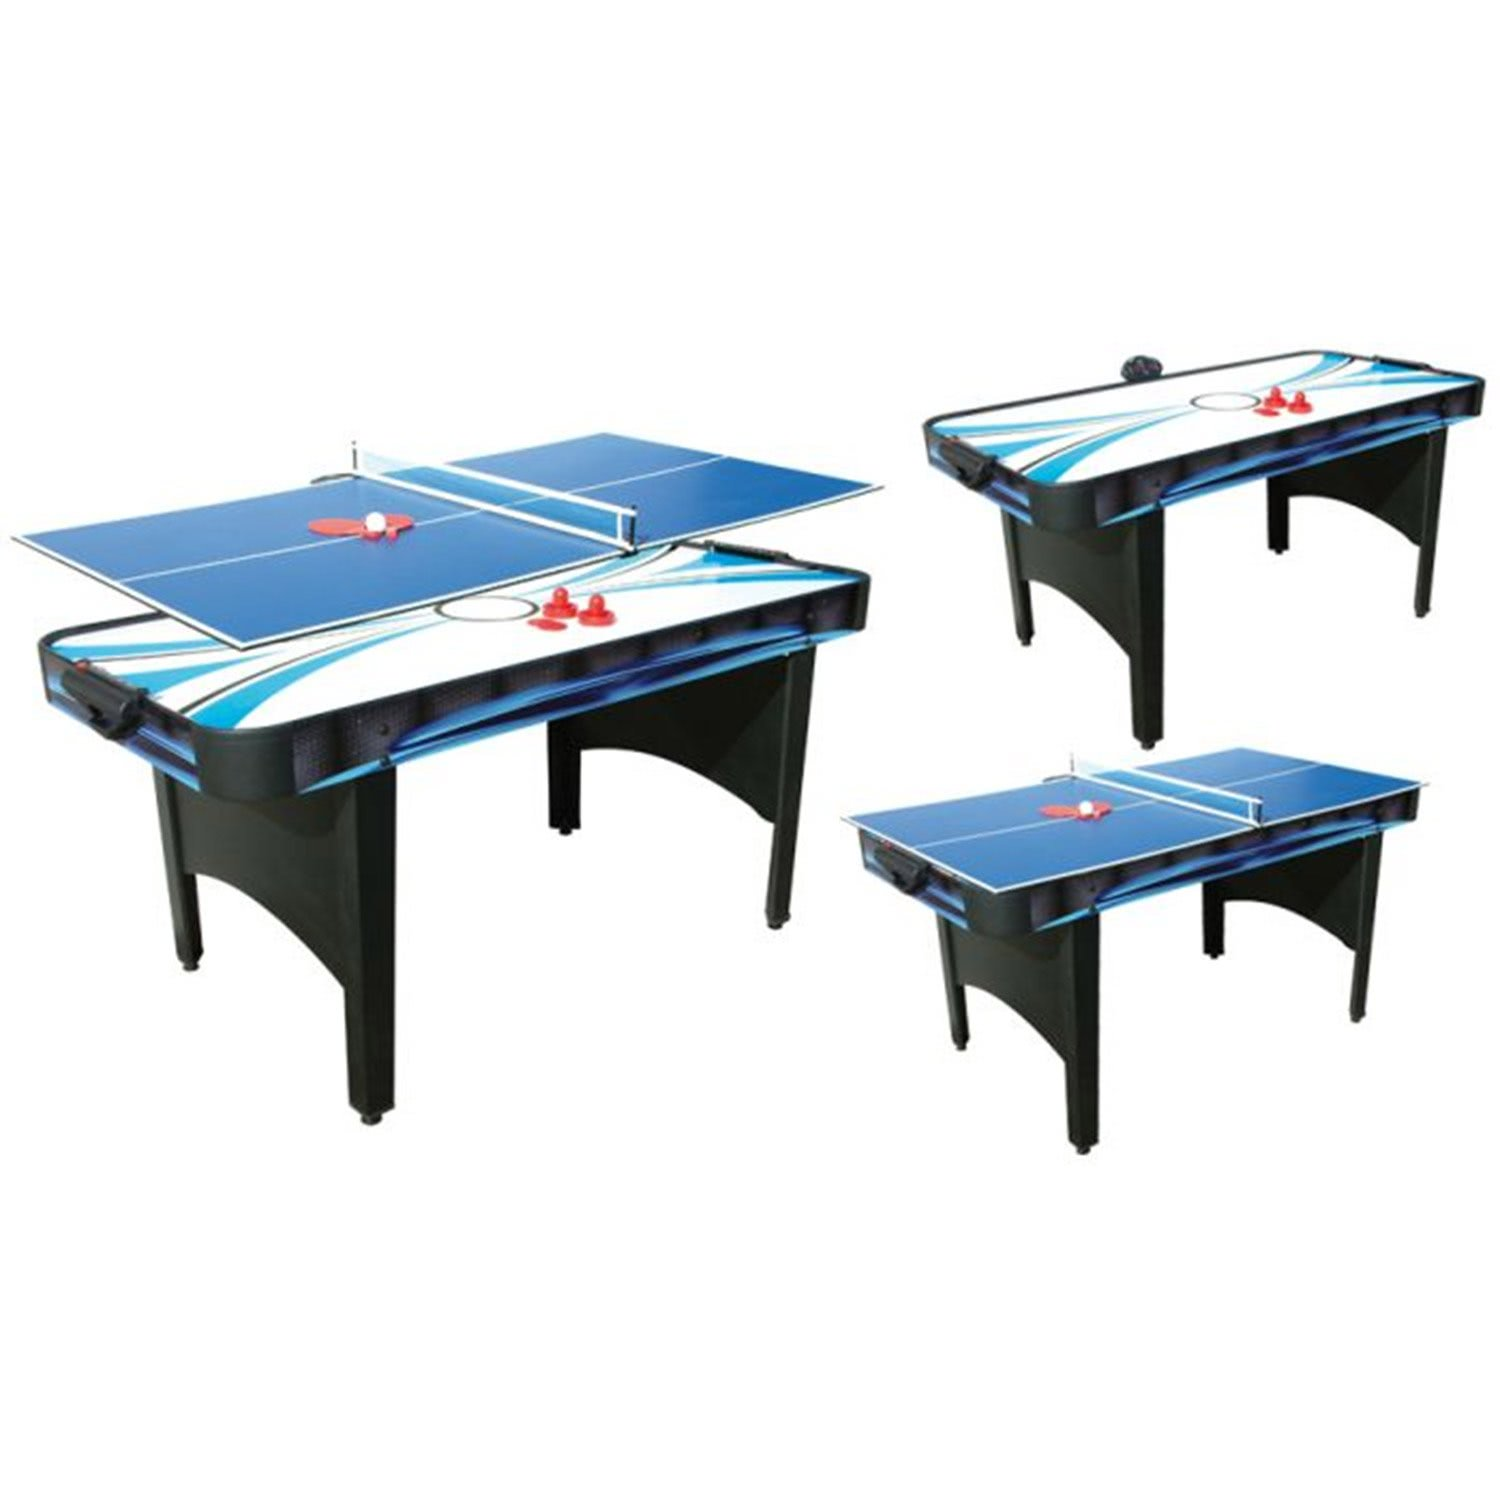 Typhoon 2 in 1 air hockey table tennis table liberty games for Table hockey